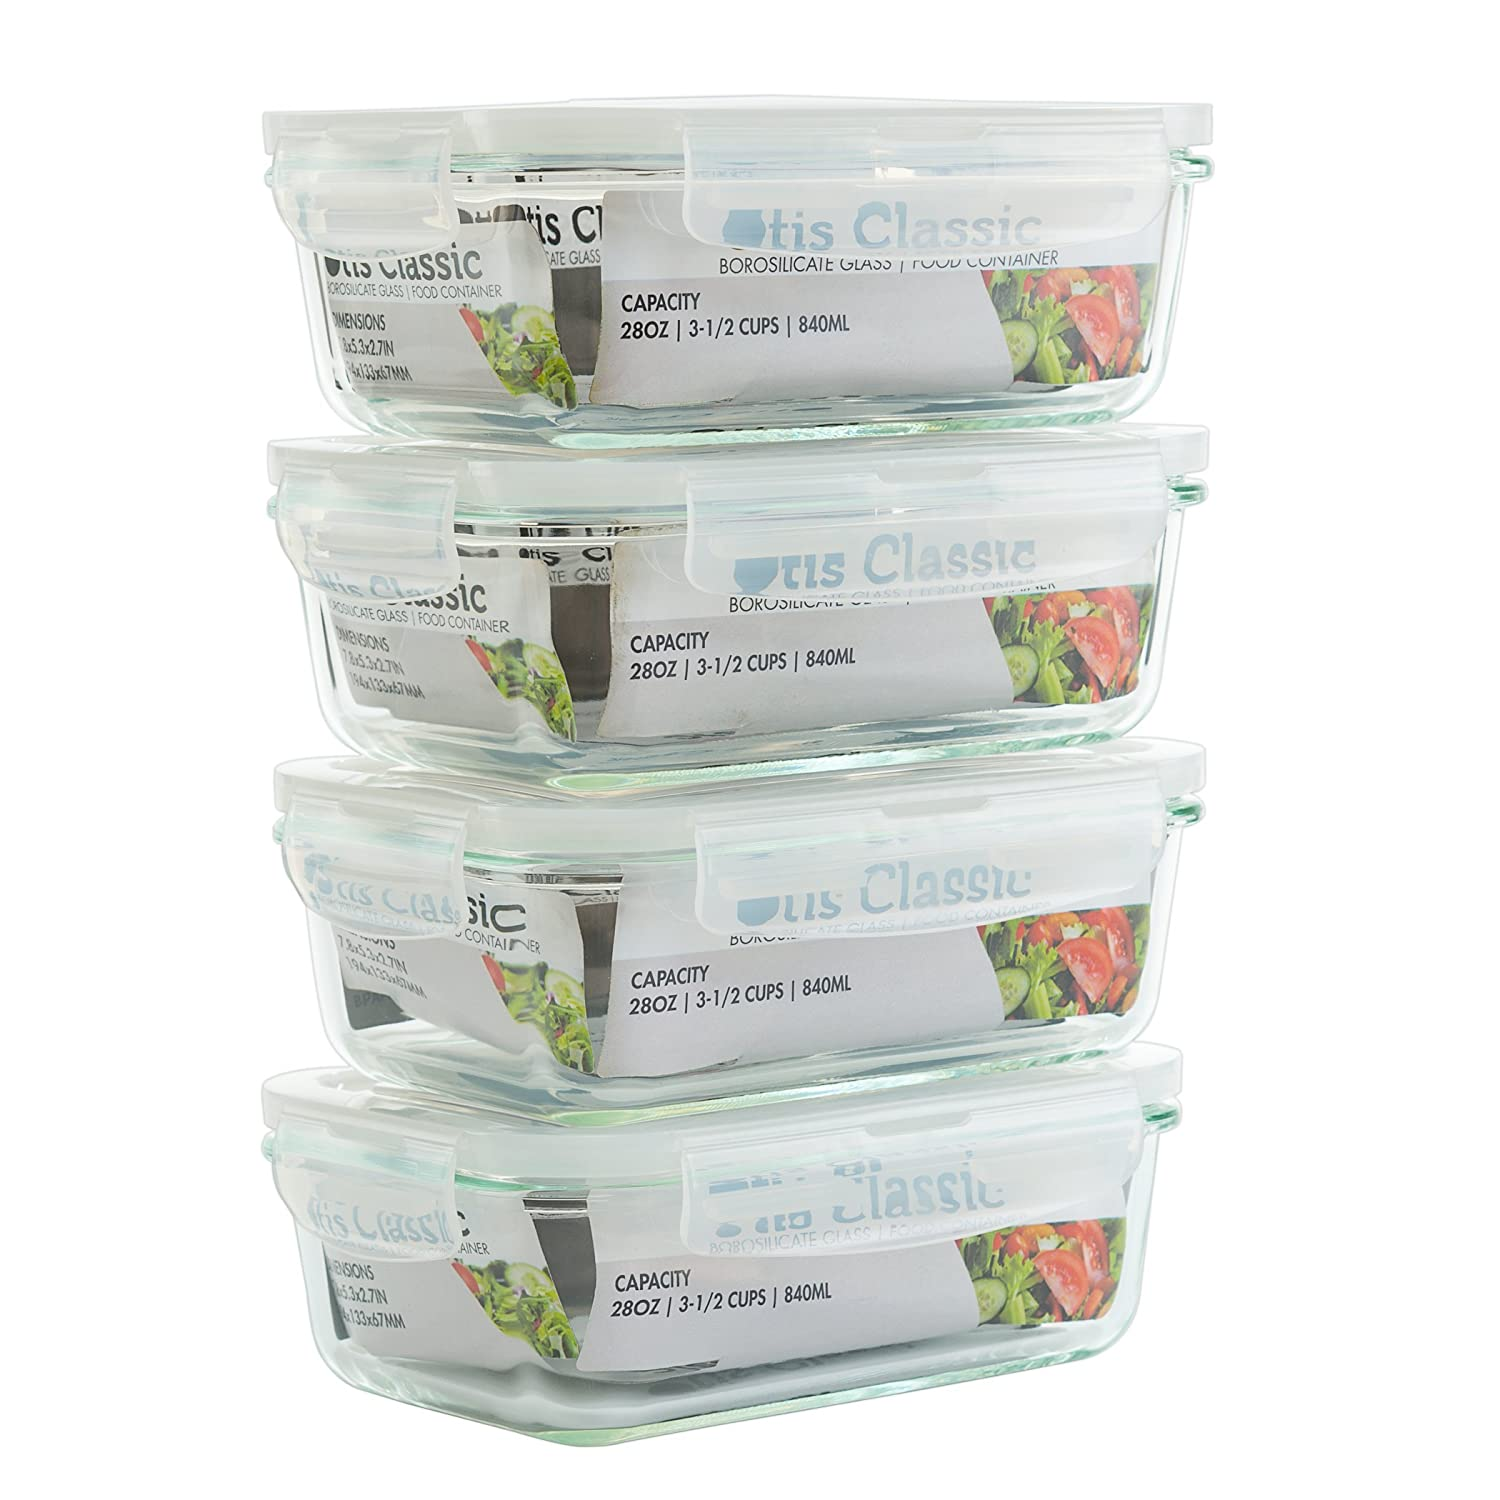 [4-Pack 28oz] Glass Food Storage Containers with Locking Lids - Glass Meal Prep Containers with Lids - Lunch Bento Boxes - 1 Compartment - 4pk Box Set - Transparent Lids - BPA Free and Dishwasher Safe